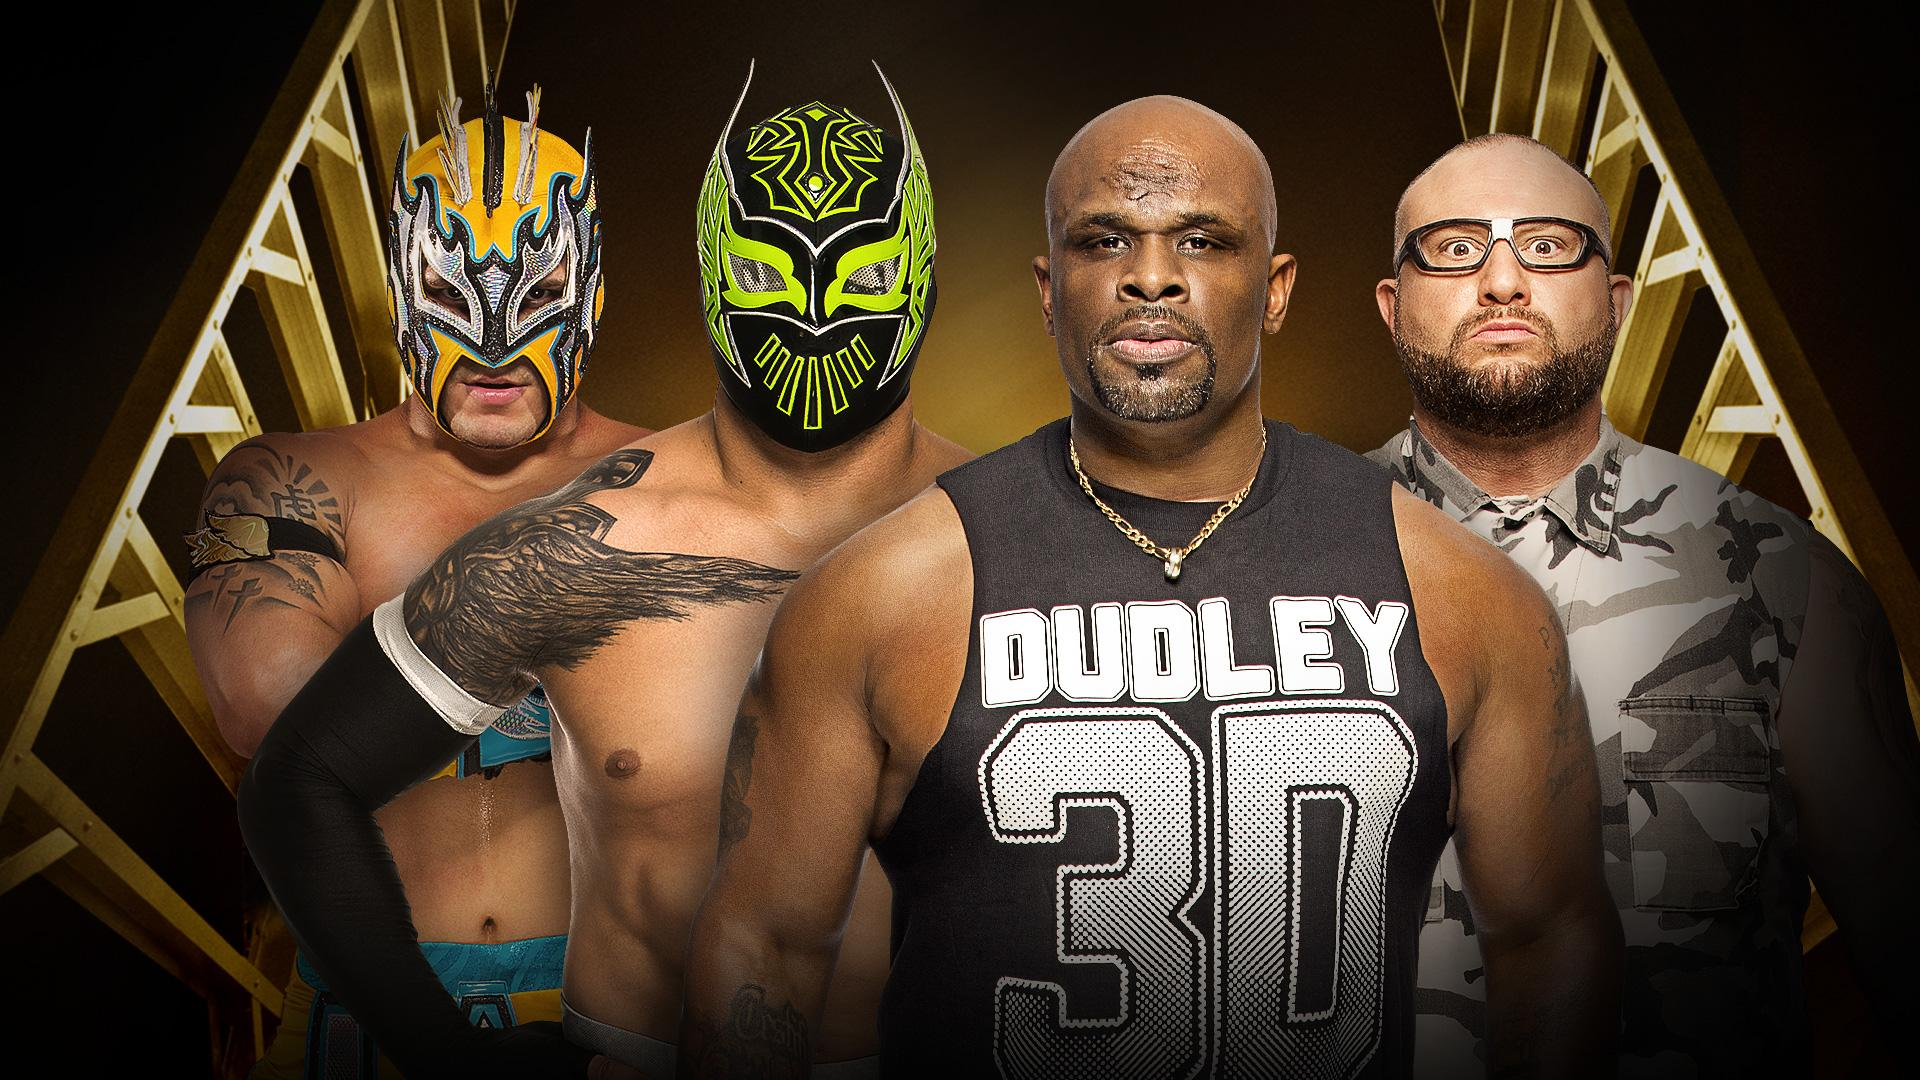 The Lucha Dragons vs The Dudley Boyz (Kickoff Match)